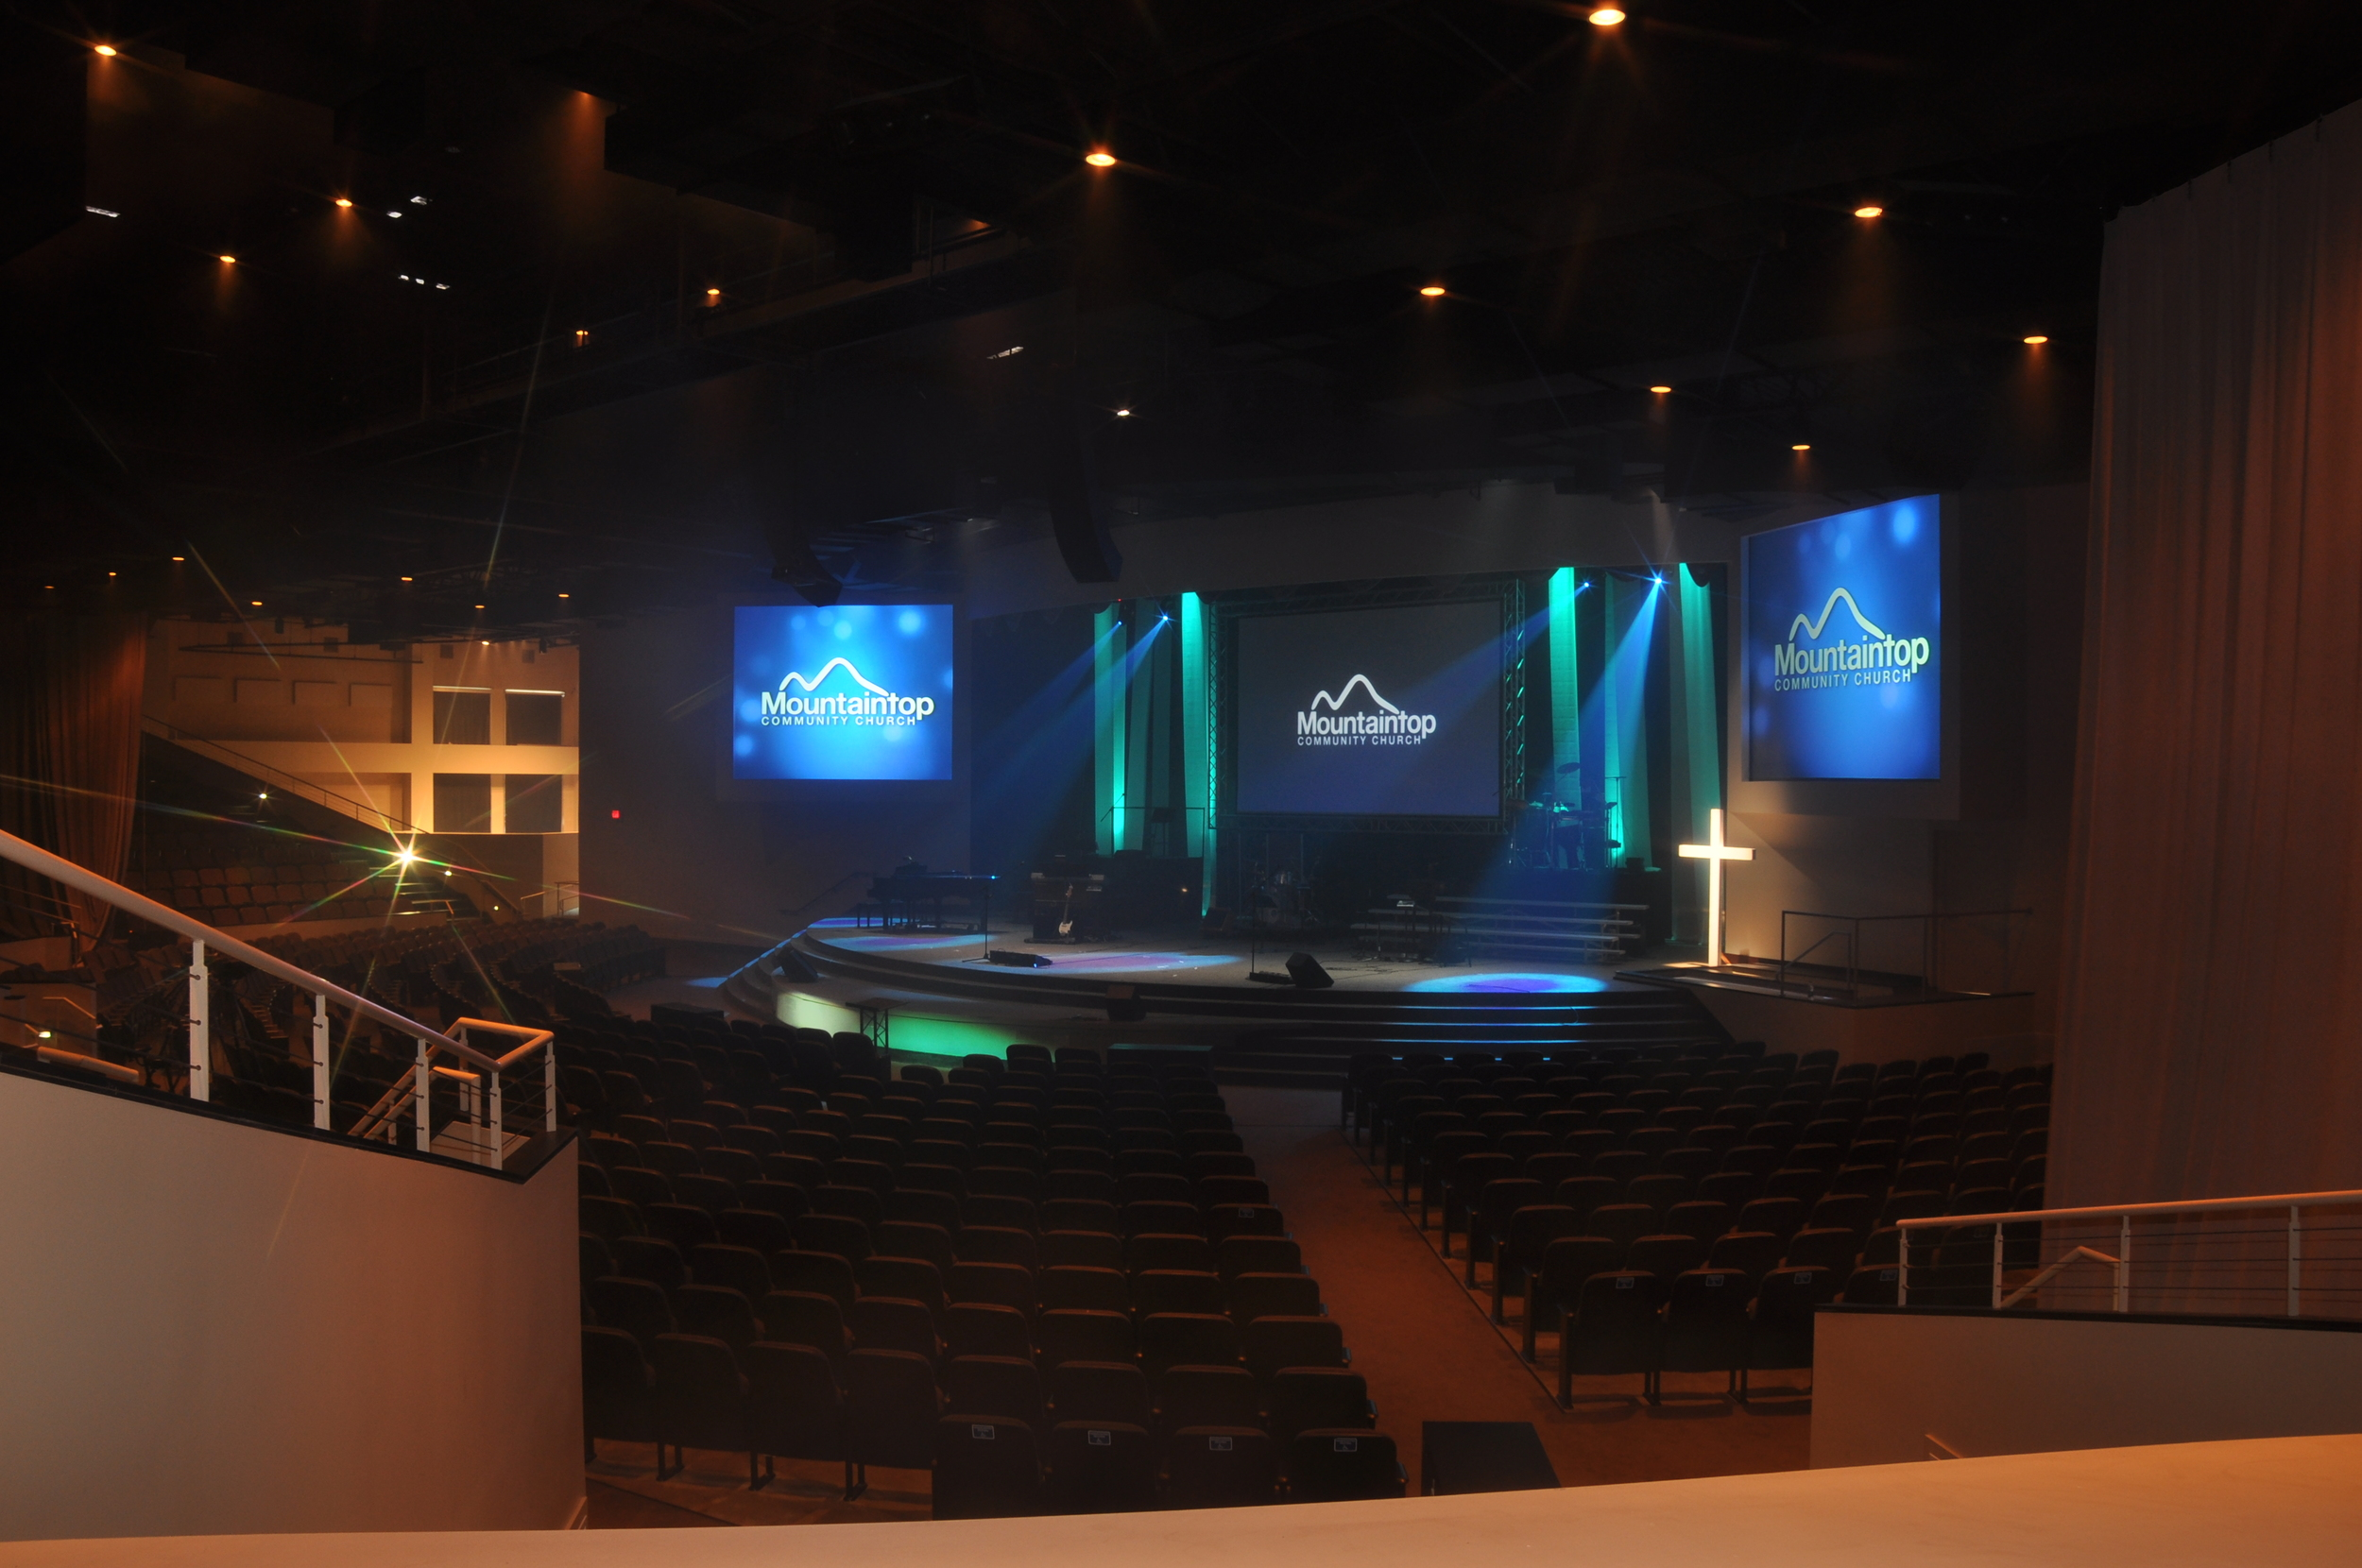 Mountaintop Community Church - Birmingham, AL